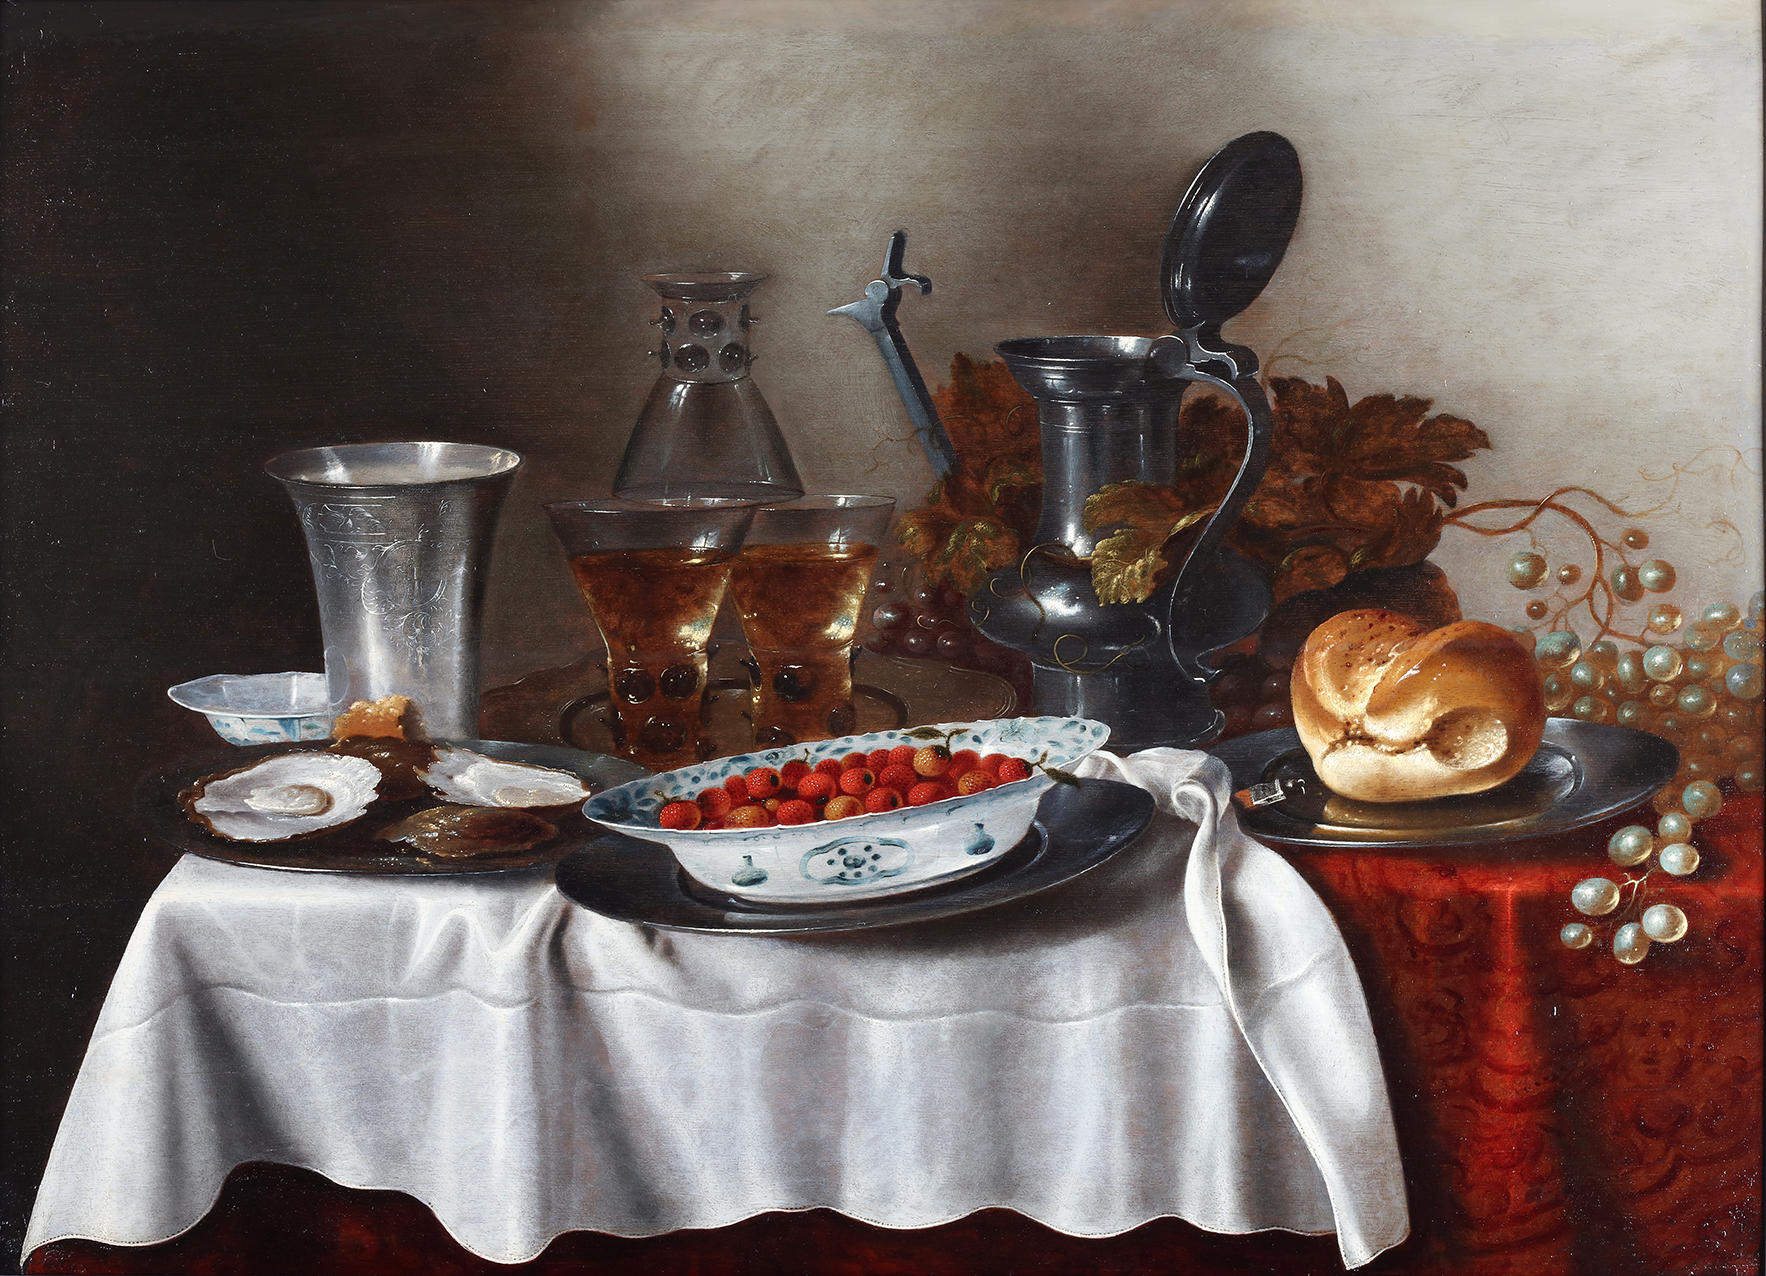 A still-life of a silver cup, strawberries in  wan-li bowl, a loaf of bread and three roemers on a table ledge decorated with a red table cloth